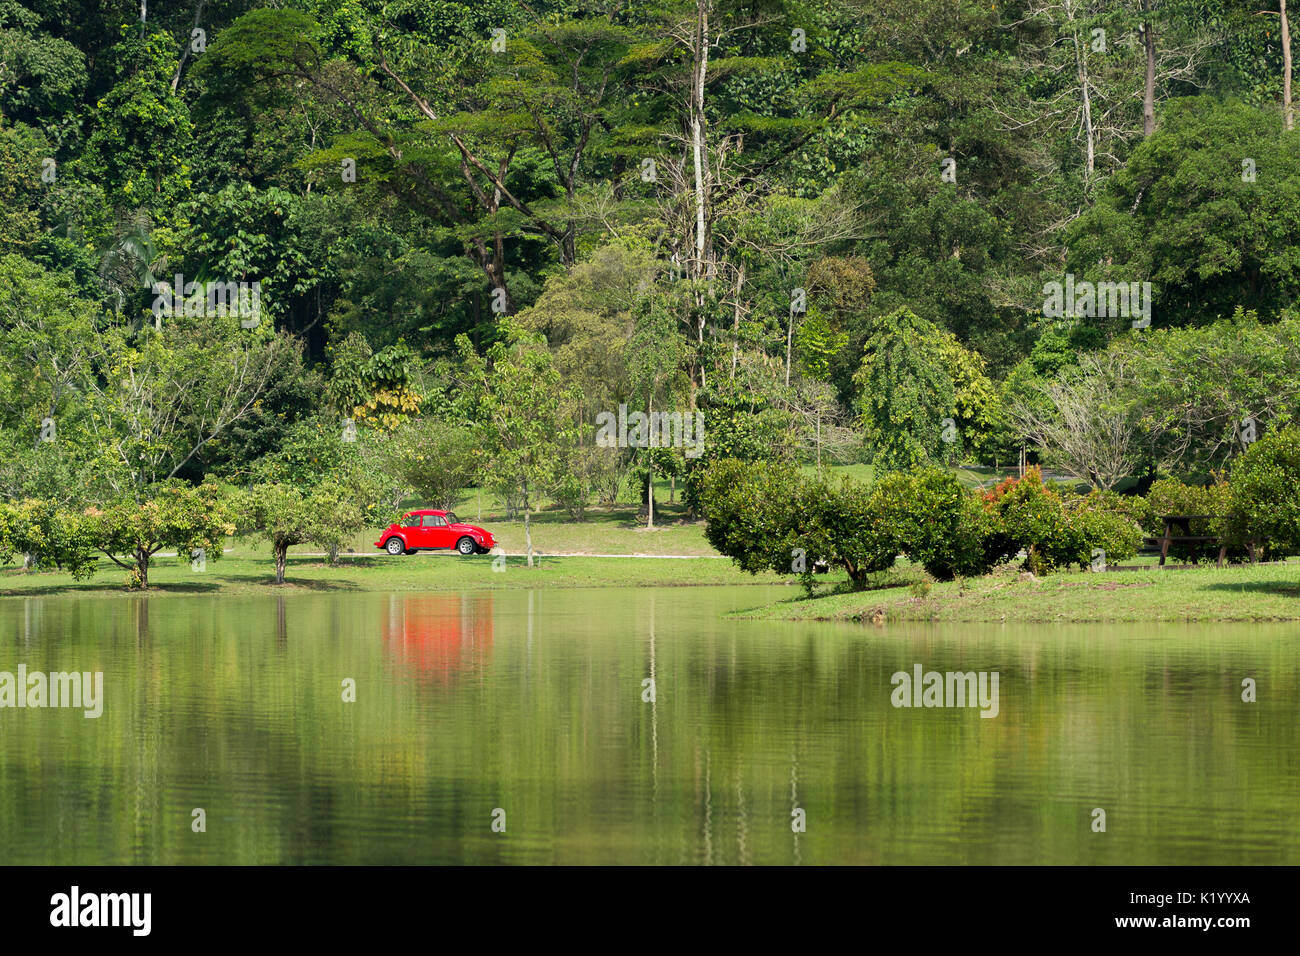 A classic bright red VW Volkswagen Beetle parked in a out of place setting of a tropical forested park by a lake, Stock Photo